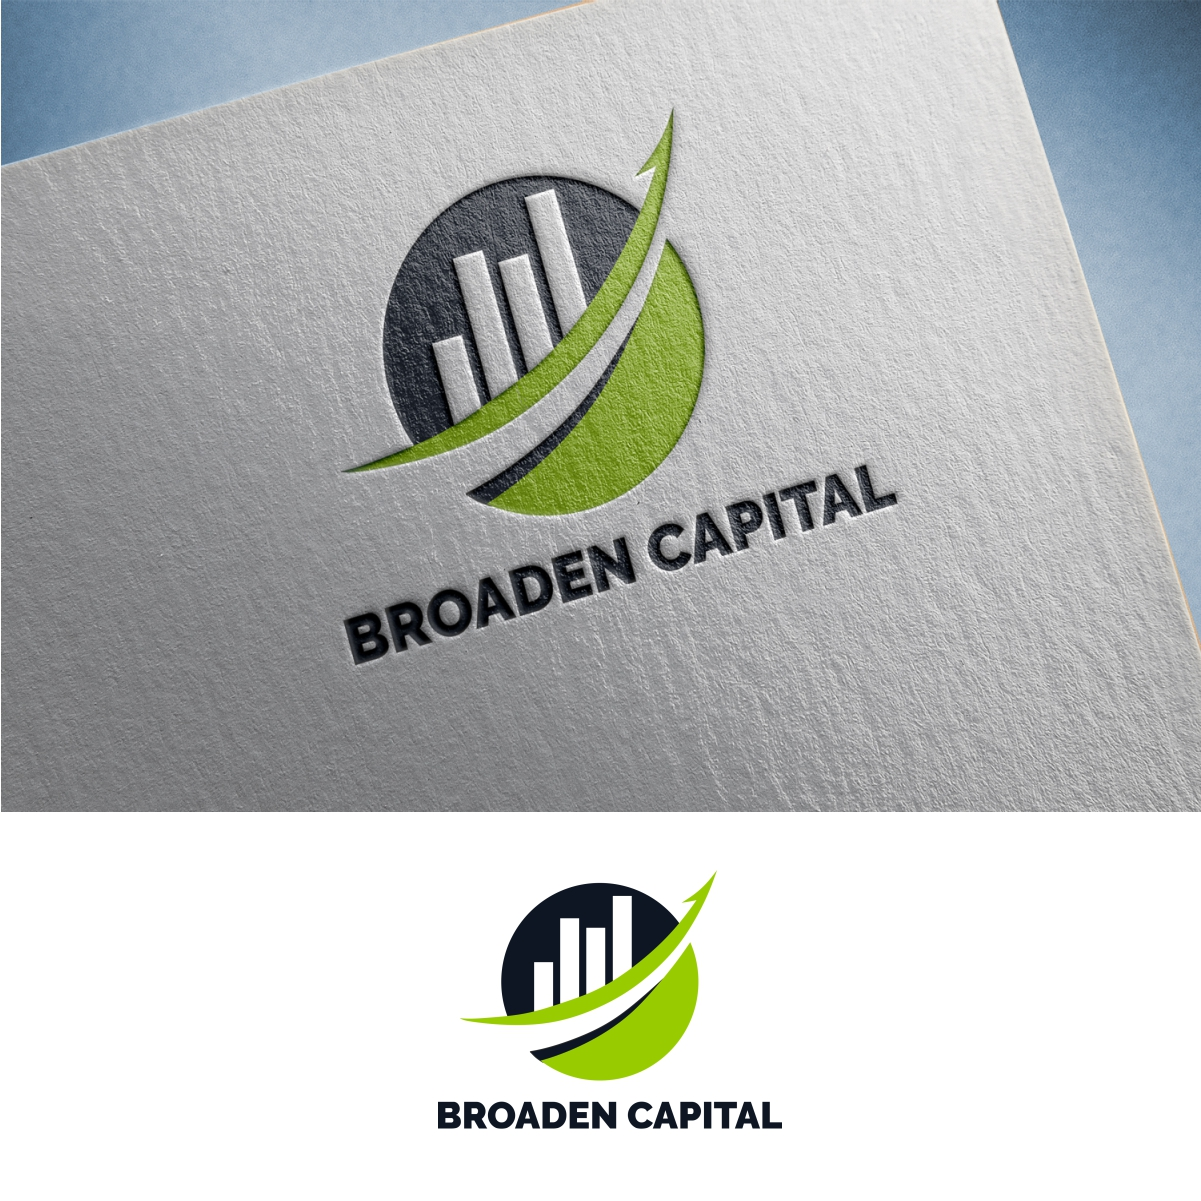 BRODEN CAPITAL